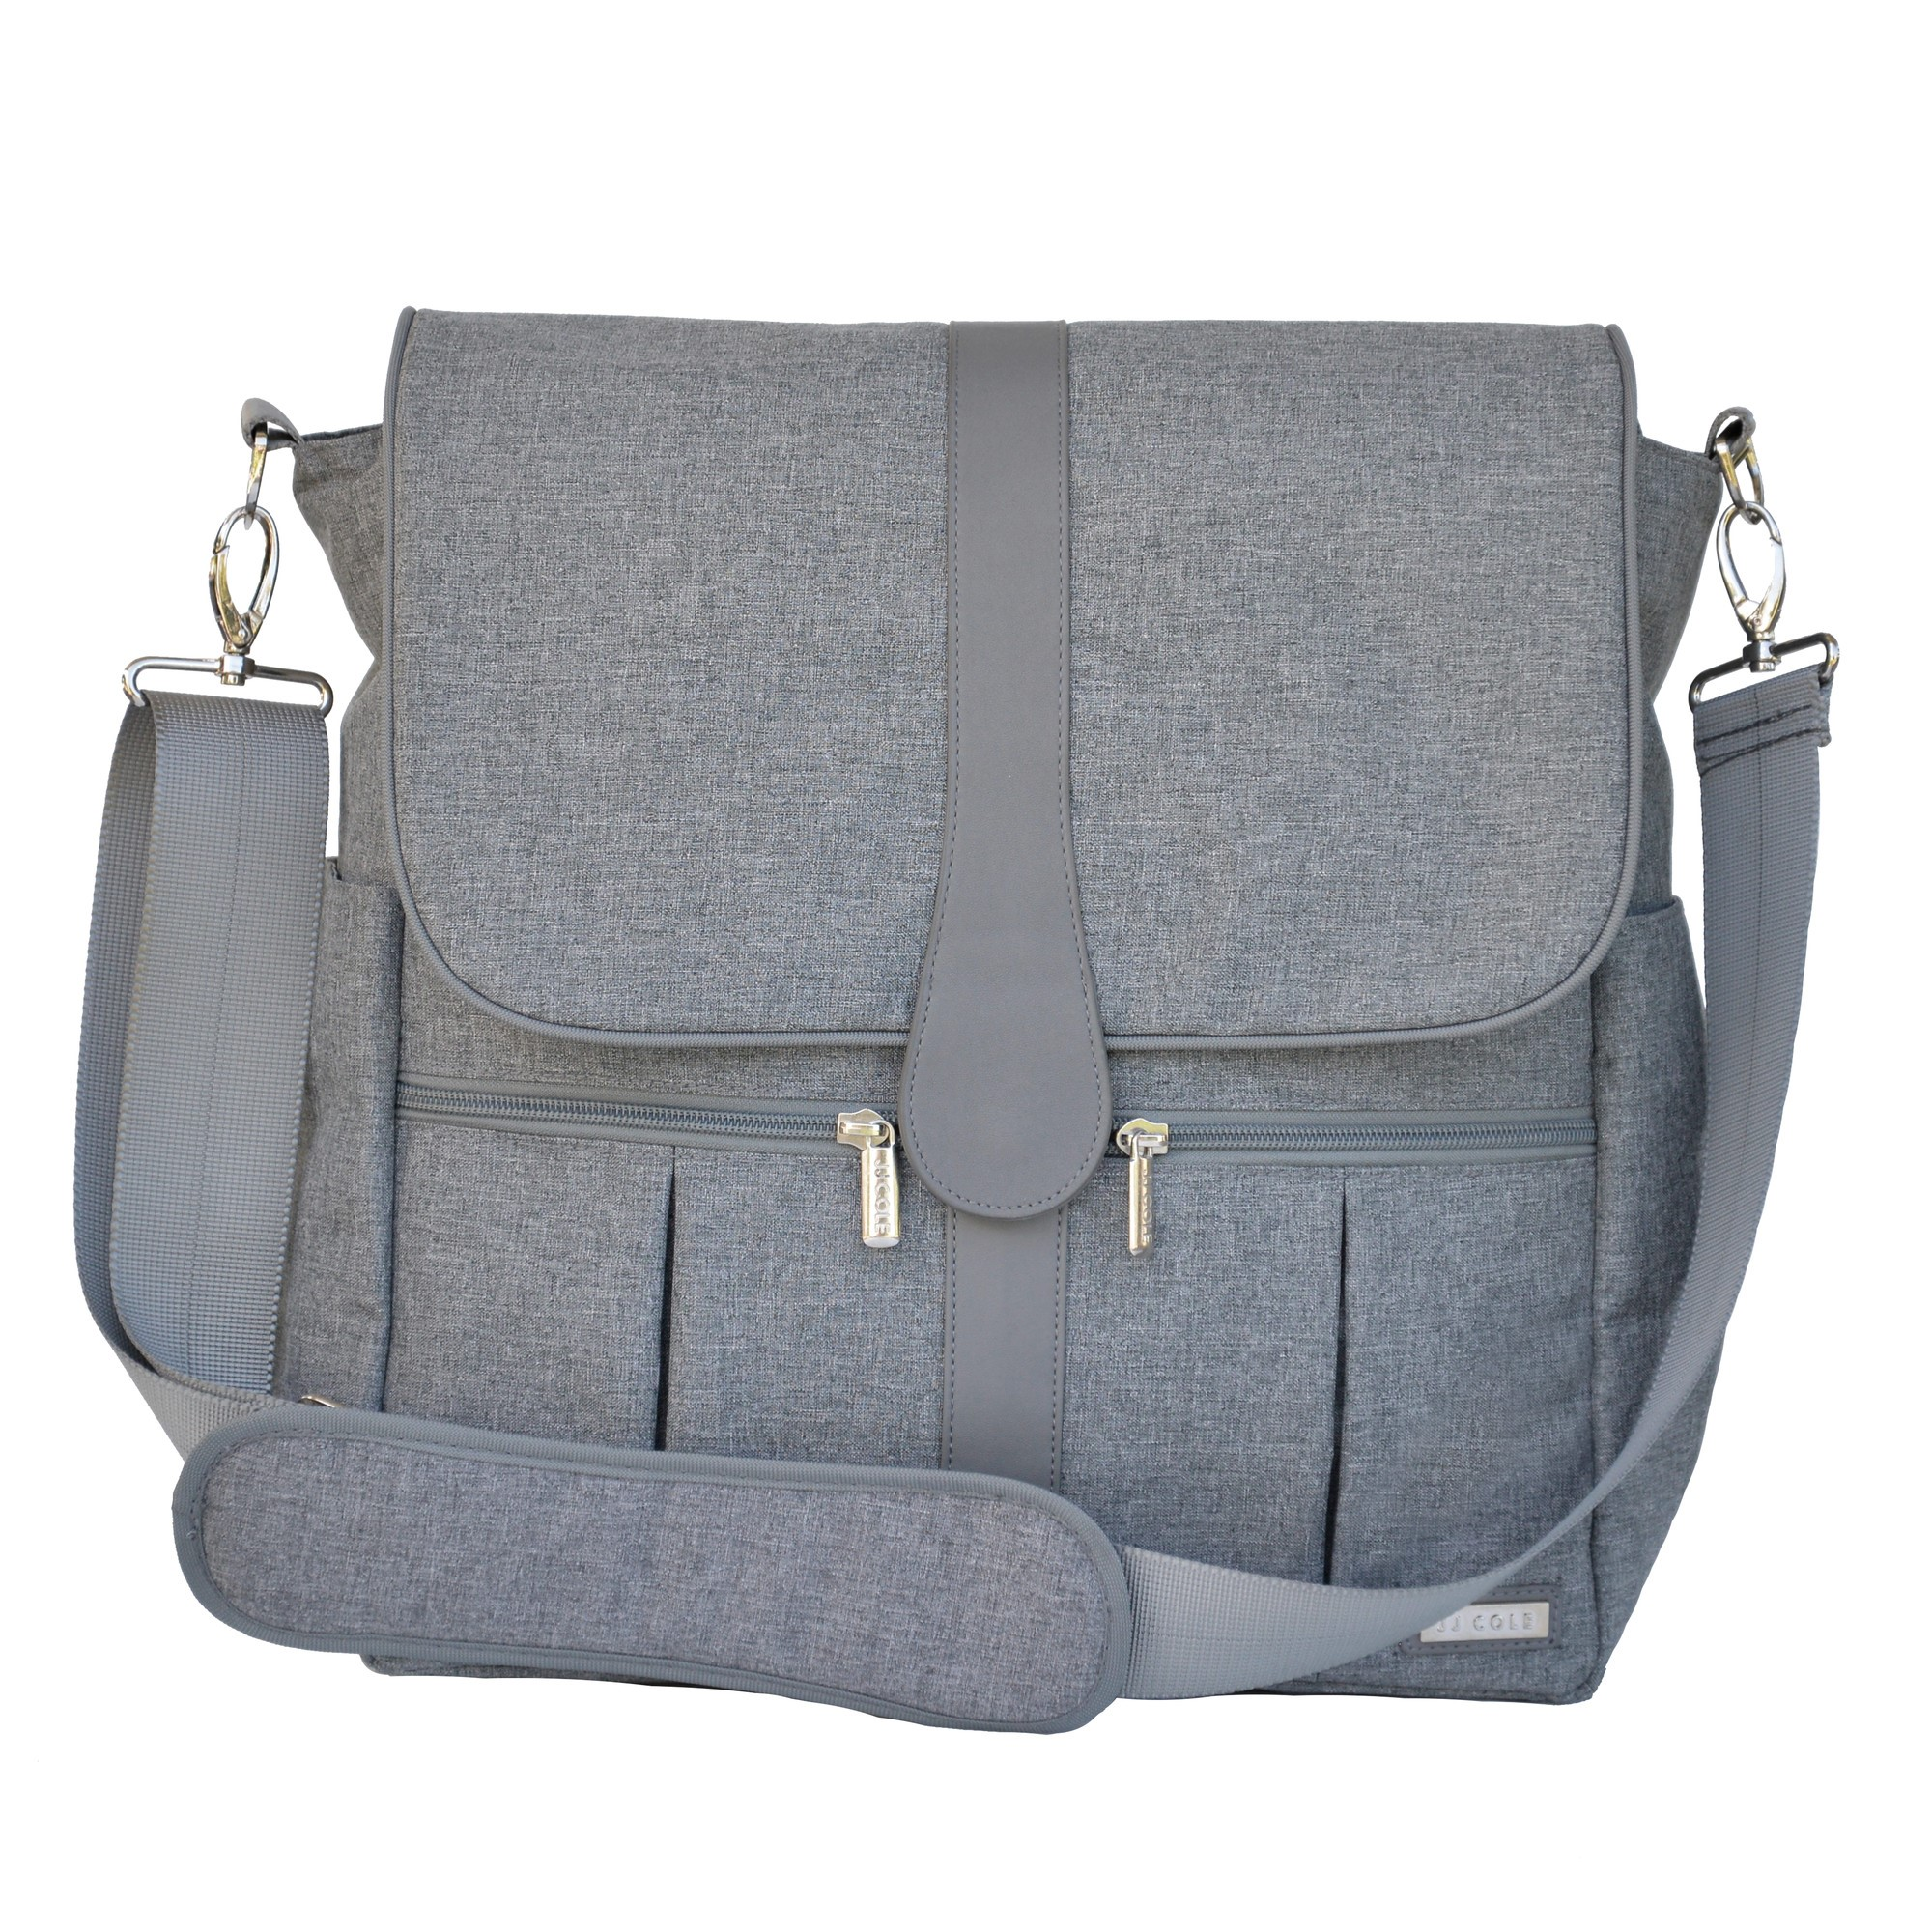 JJ COLE Backpack Diaper Bag - Gray Heather